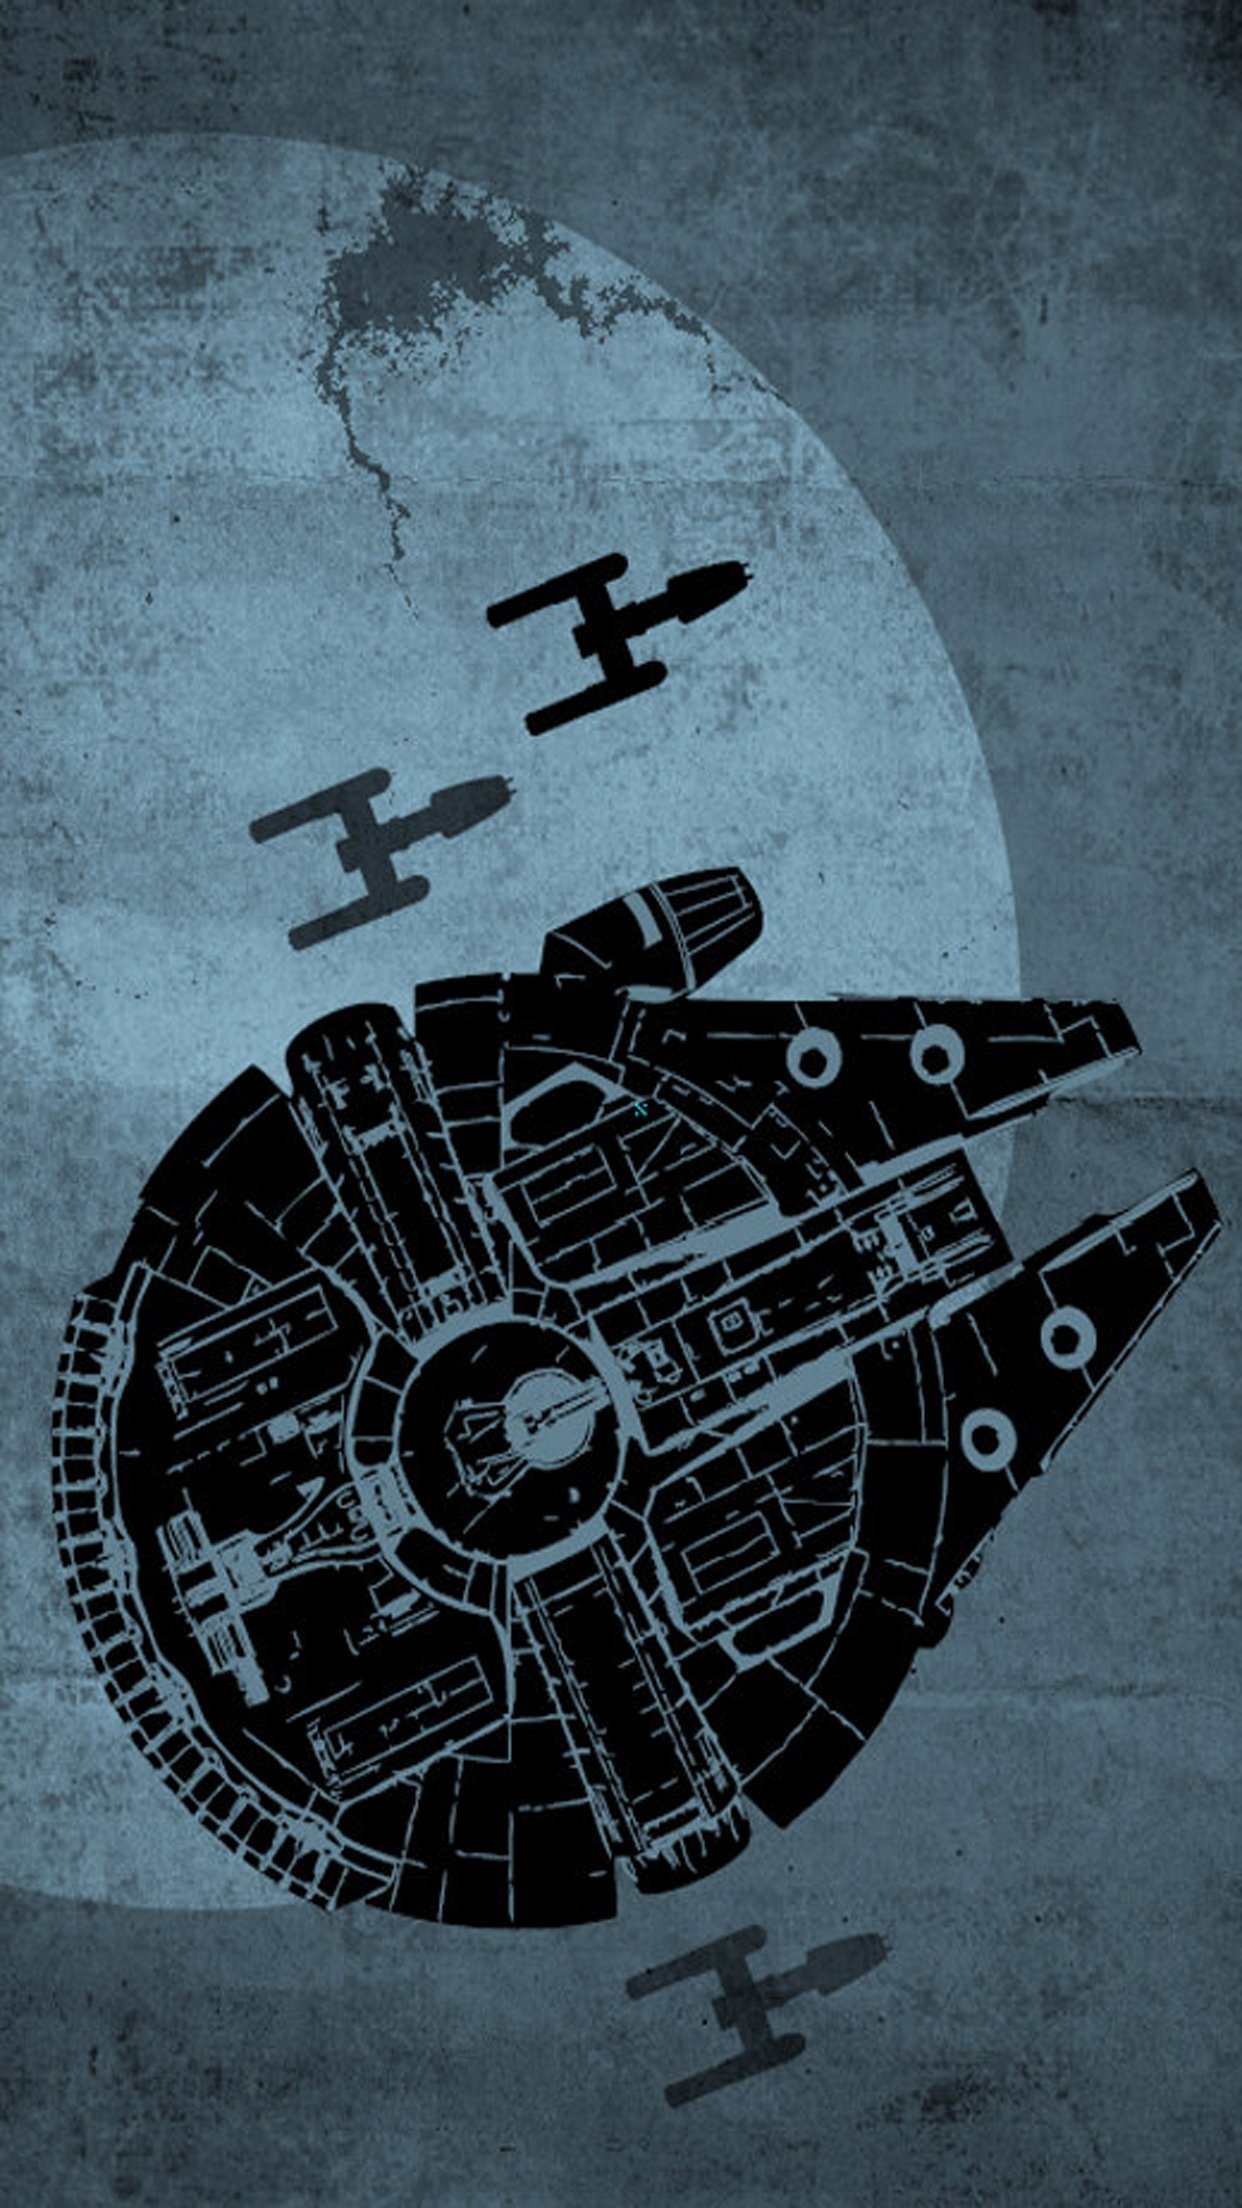 Wallpapers de Star Wars para iPhone MarcianoPhone 1242x2208